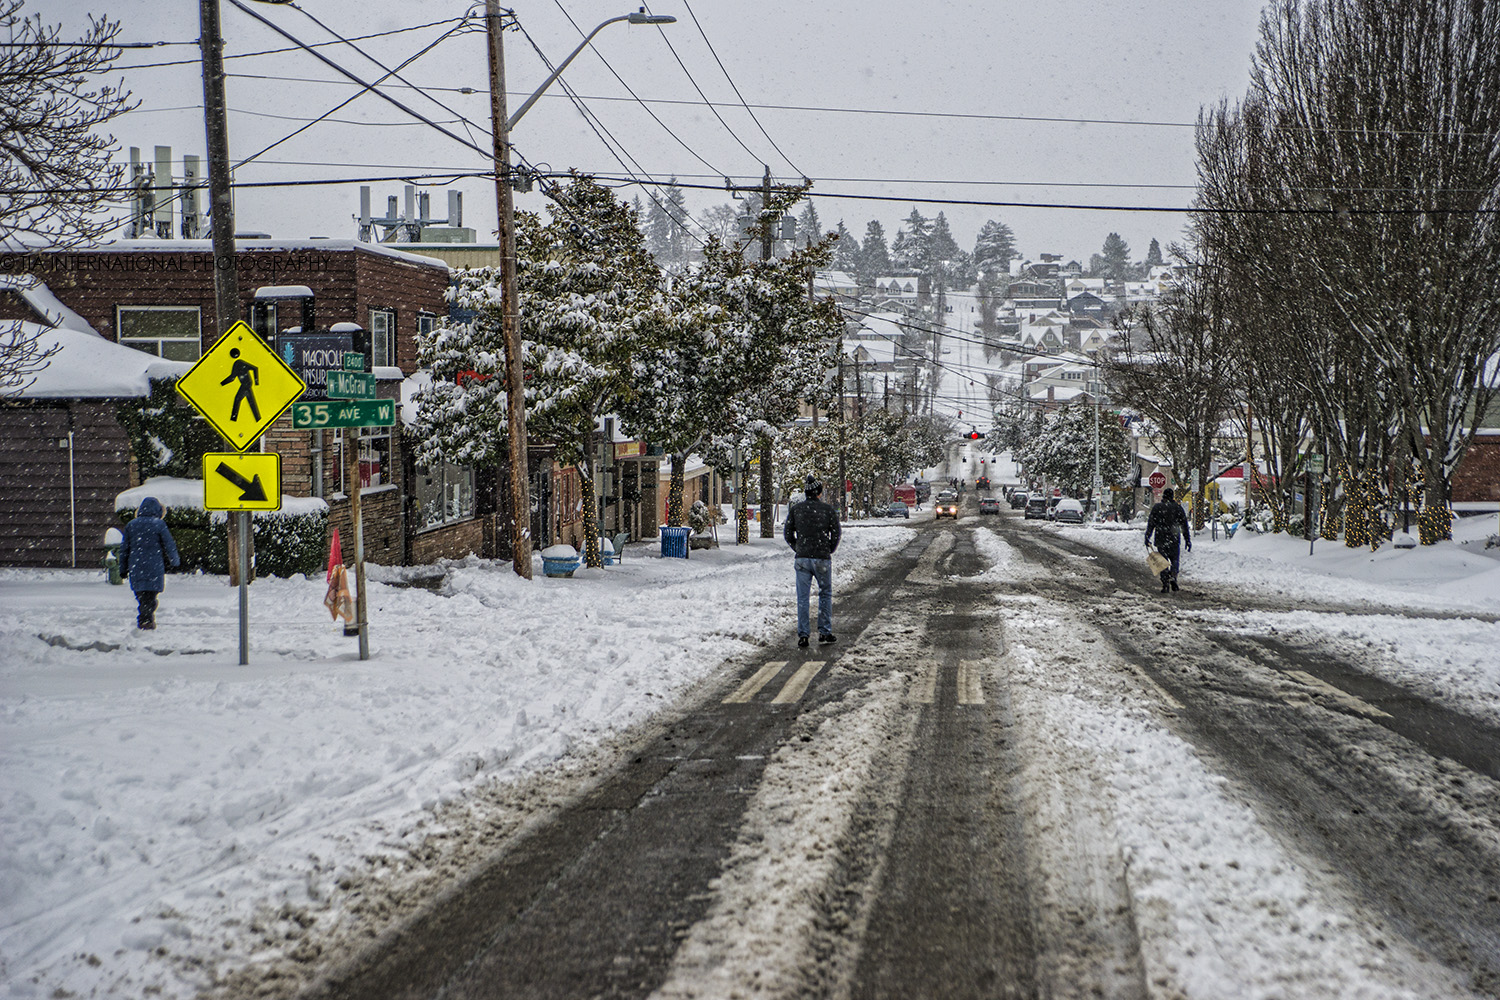 McGraw Street, Magnolia Village, Seattle (February 13, 2021).